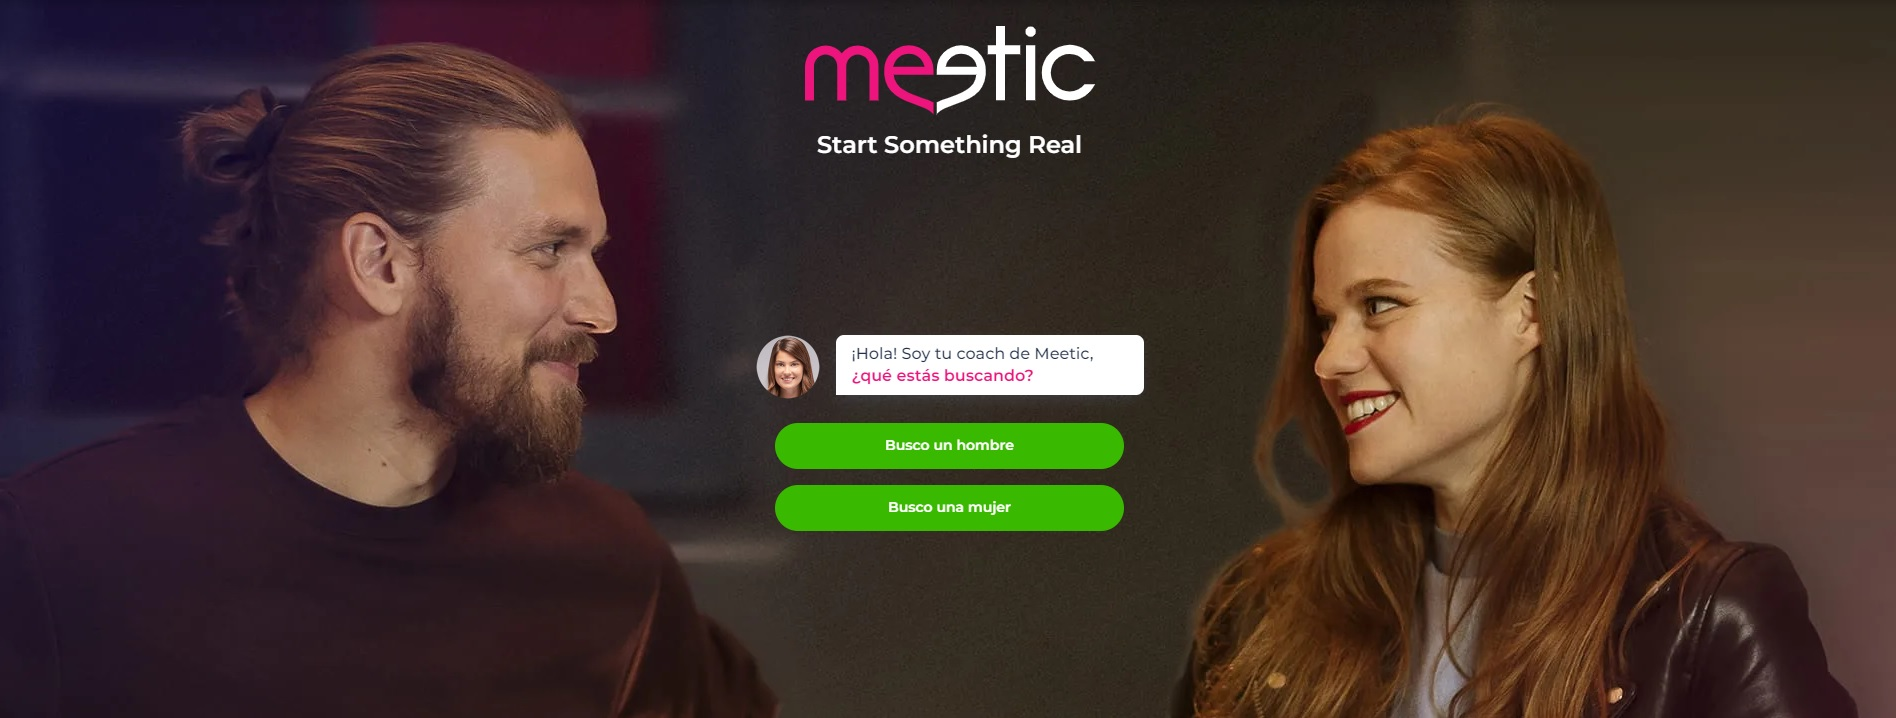 meetic-start-page